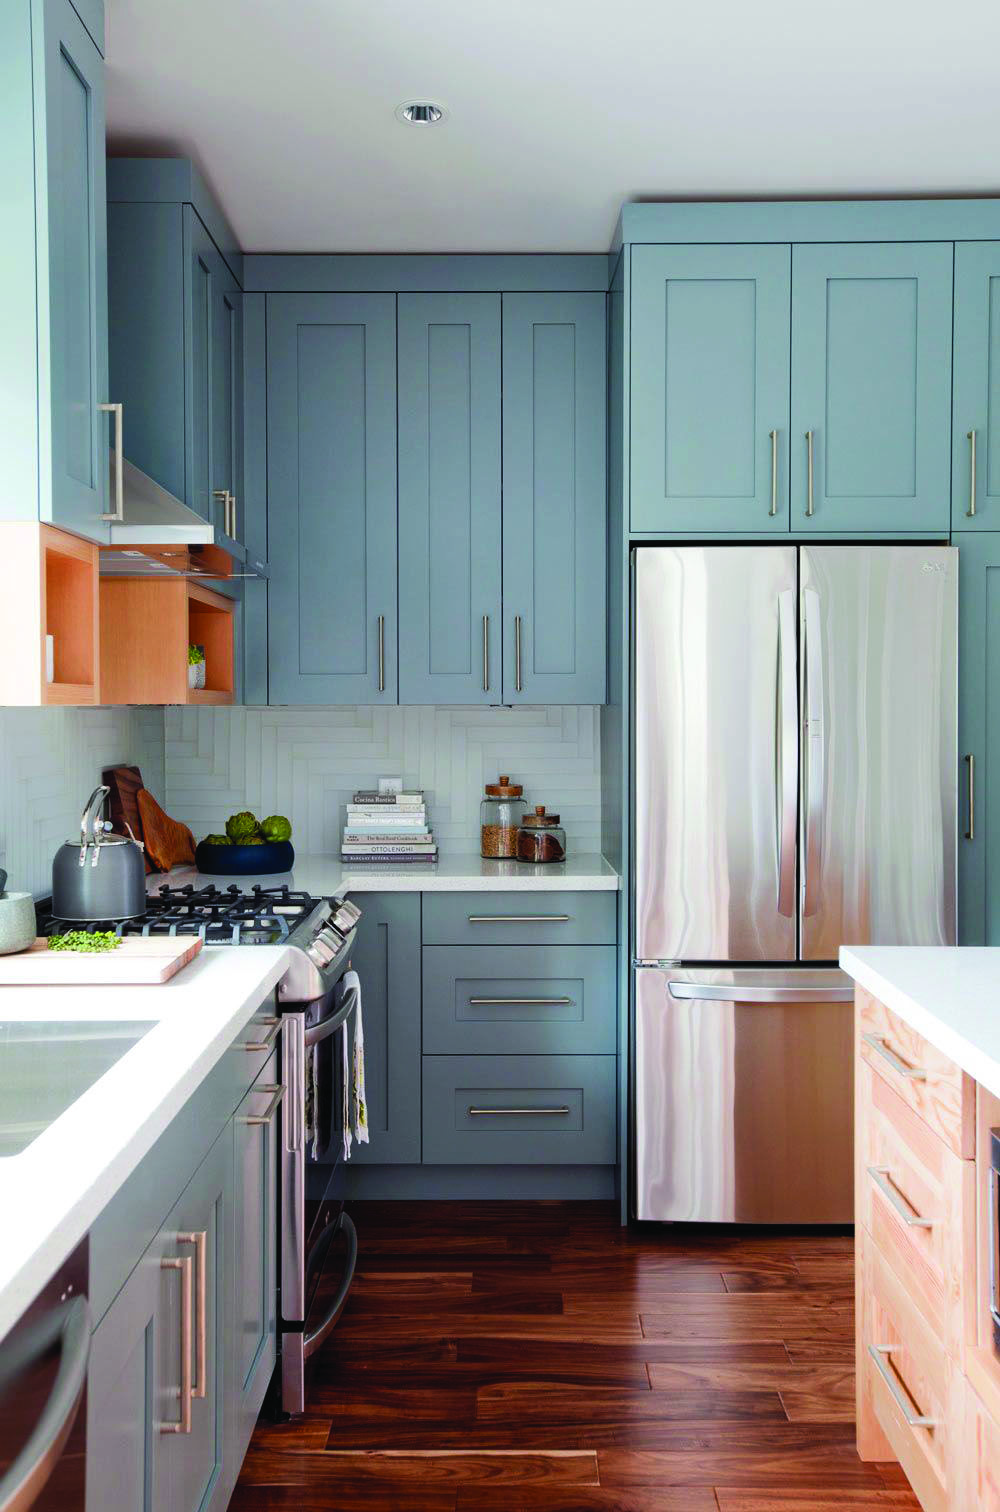 Leading Fad In Kitchen Cabinetry Style Homes Tre Home Depot Kitchen Kitchen Cabinet Design New Kitchen Cabinets